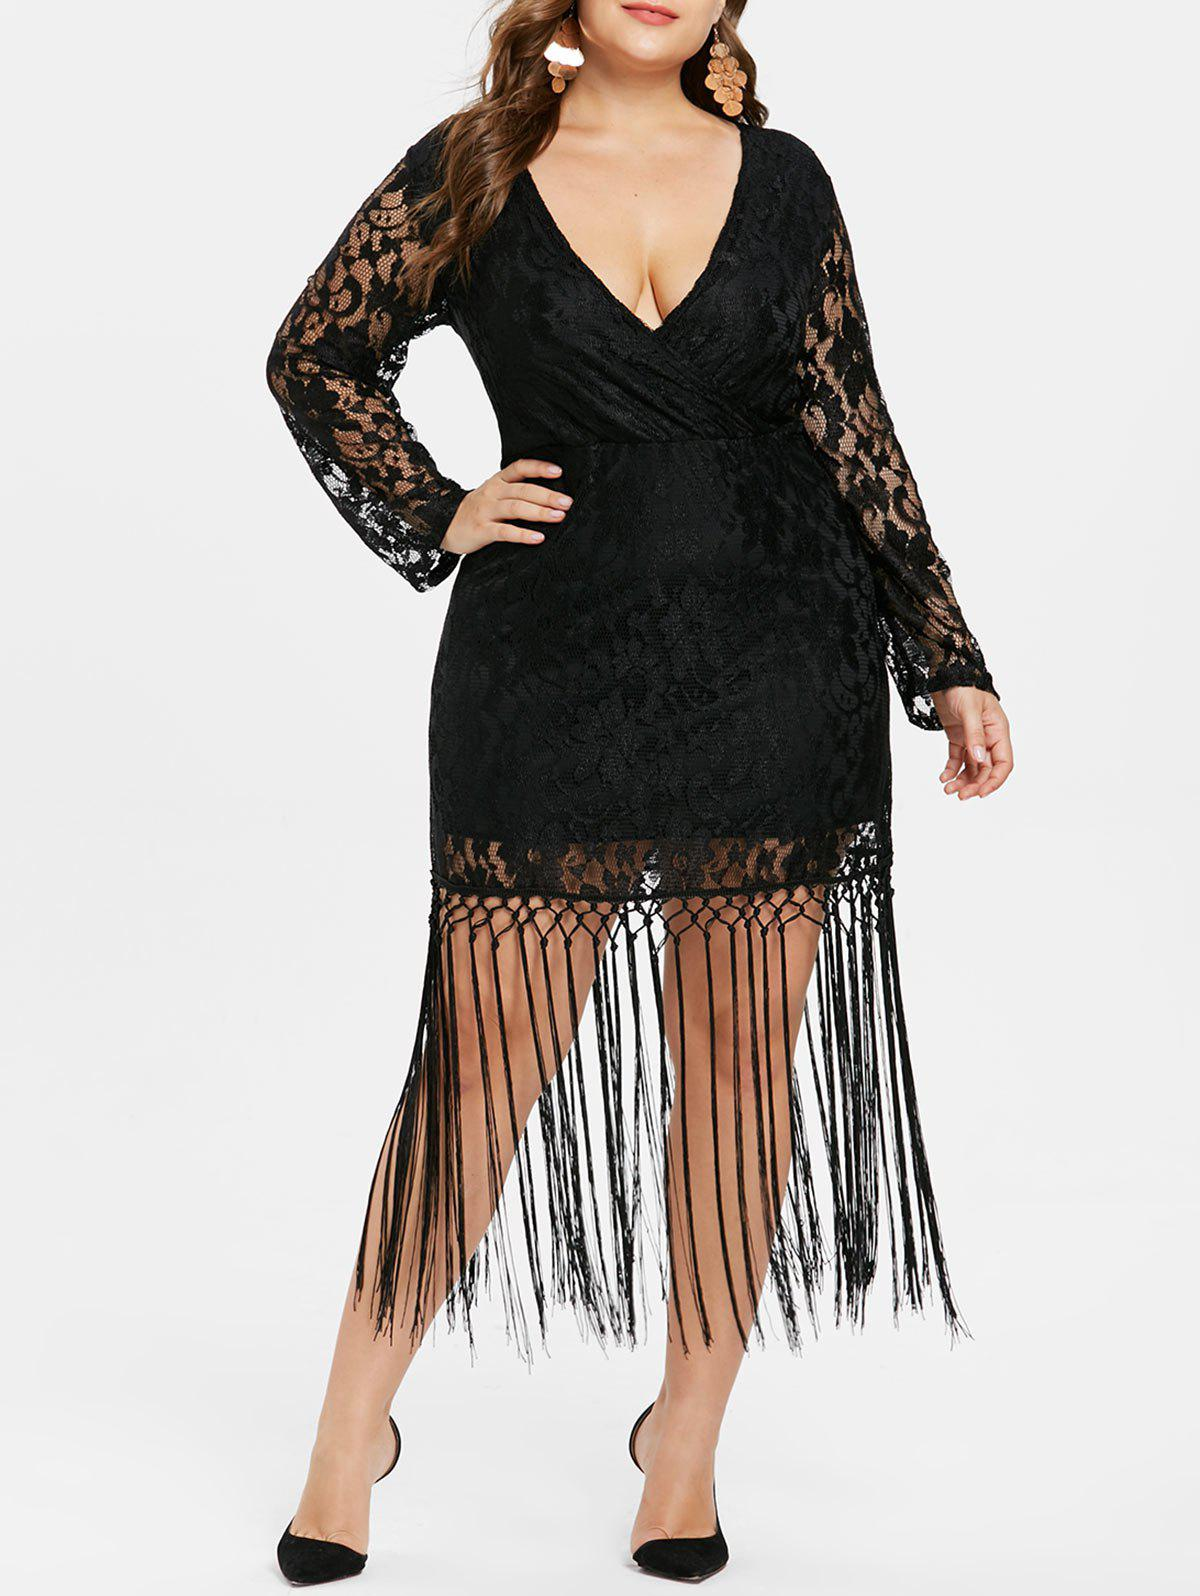 0d946530034 37% OFF  Plus Size Long Sleeve Lace Tassel Dress